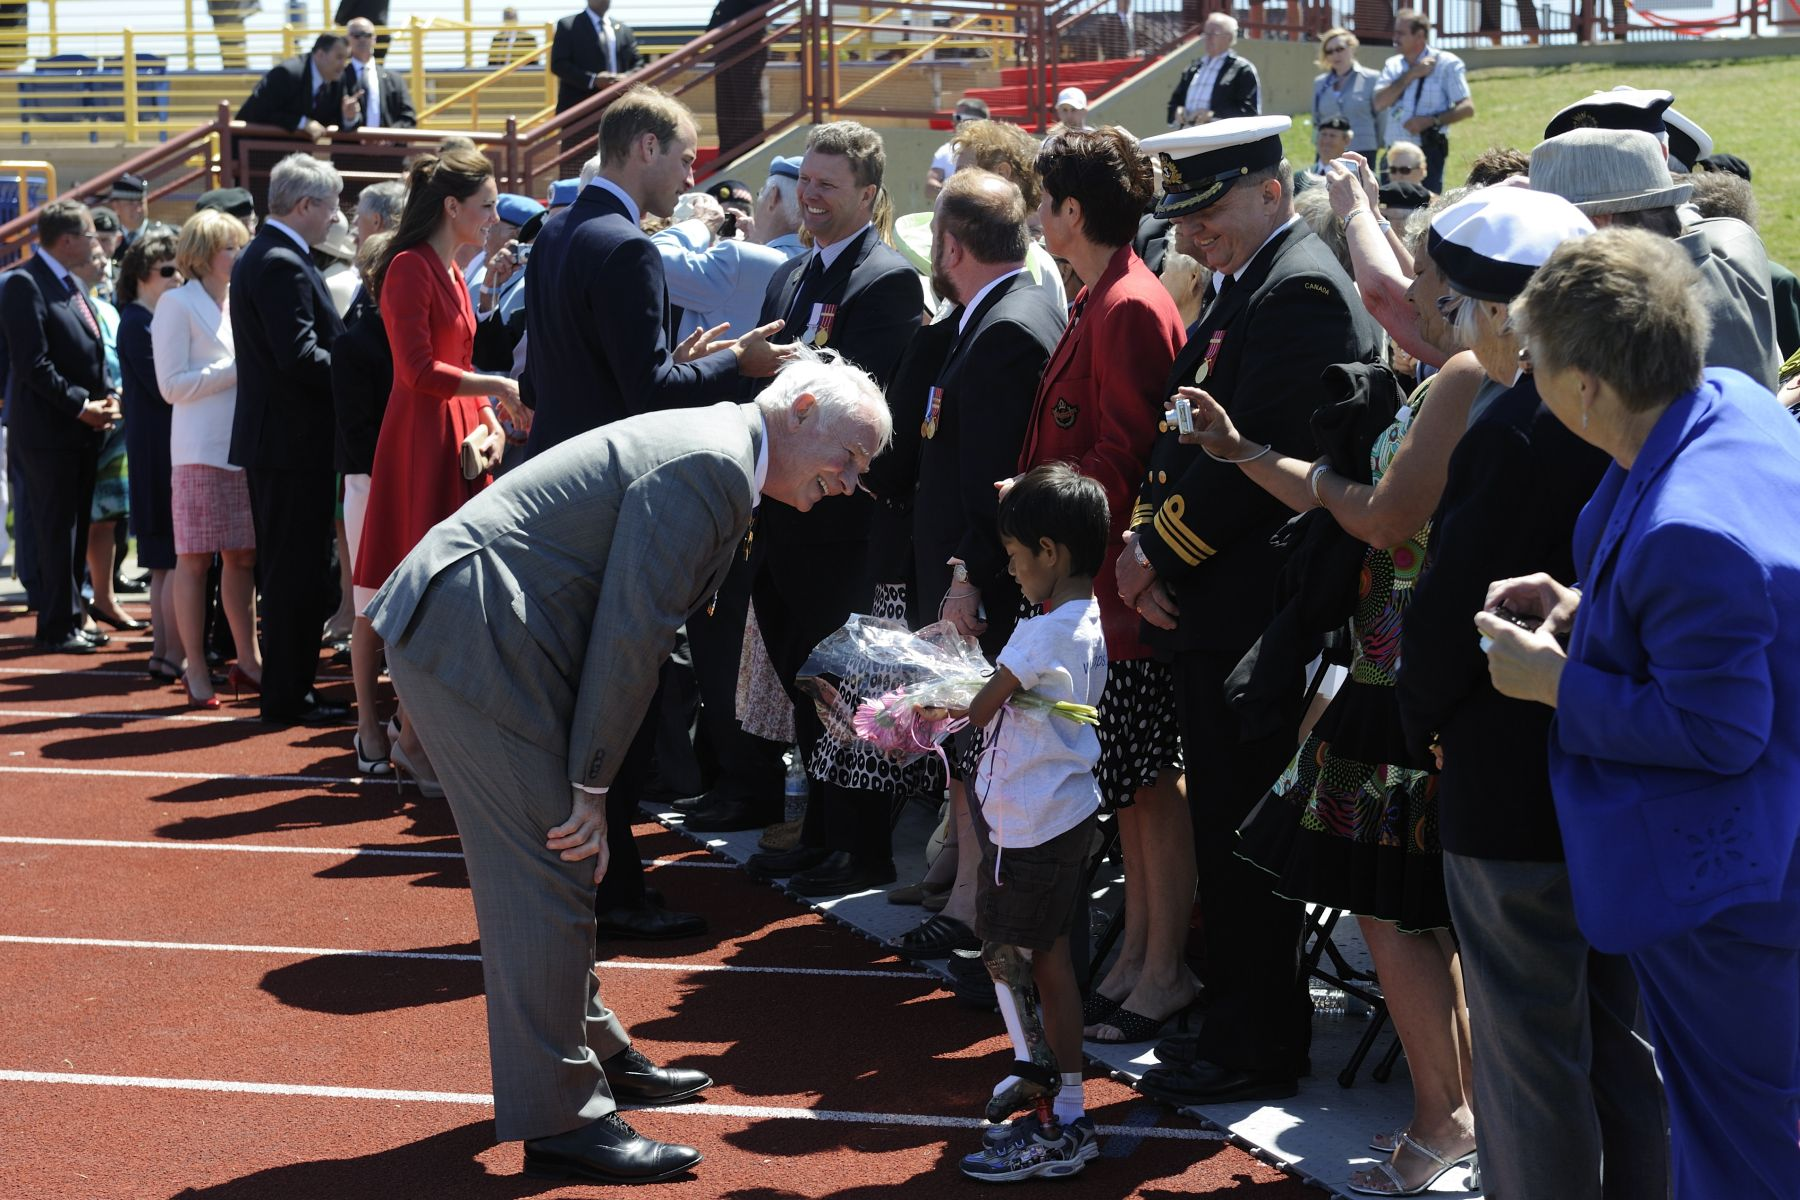 Their Excellencies and Their Royal Highnesses spoke with veterans and members of the Canadian Forces as well as their families who were on site.